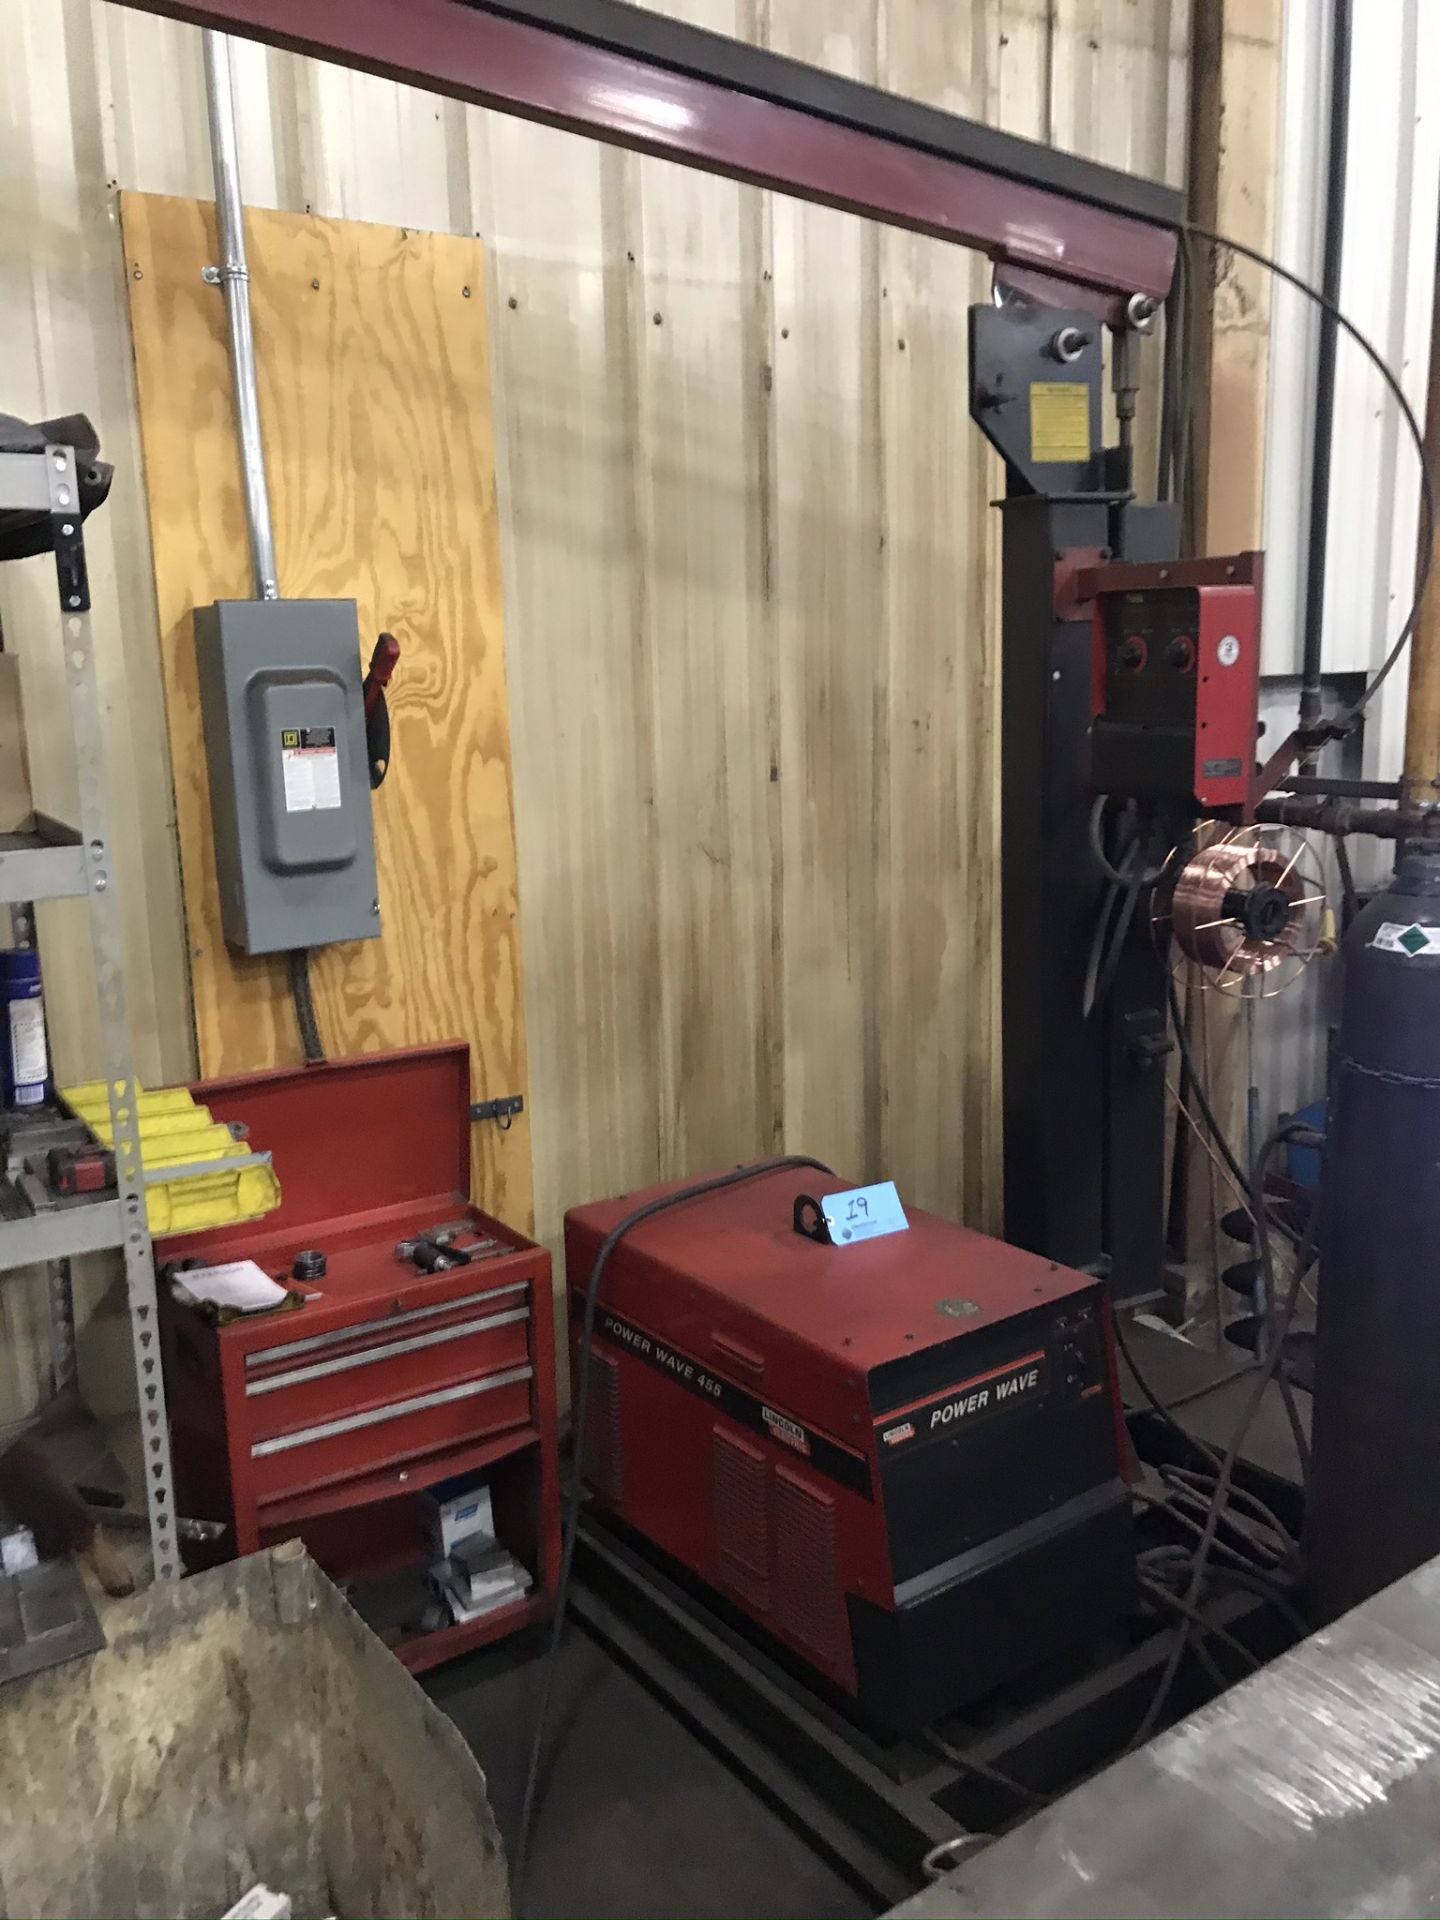 Lincoln Power Wave 455 Welder Complete with Welding Boom Arm and Lincoln Power Feed